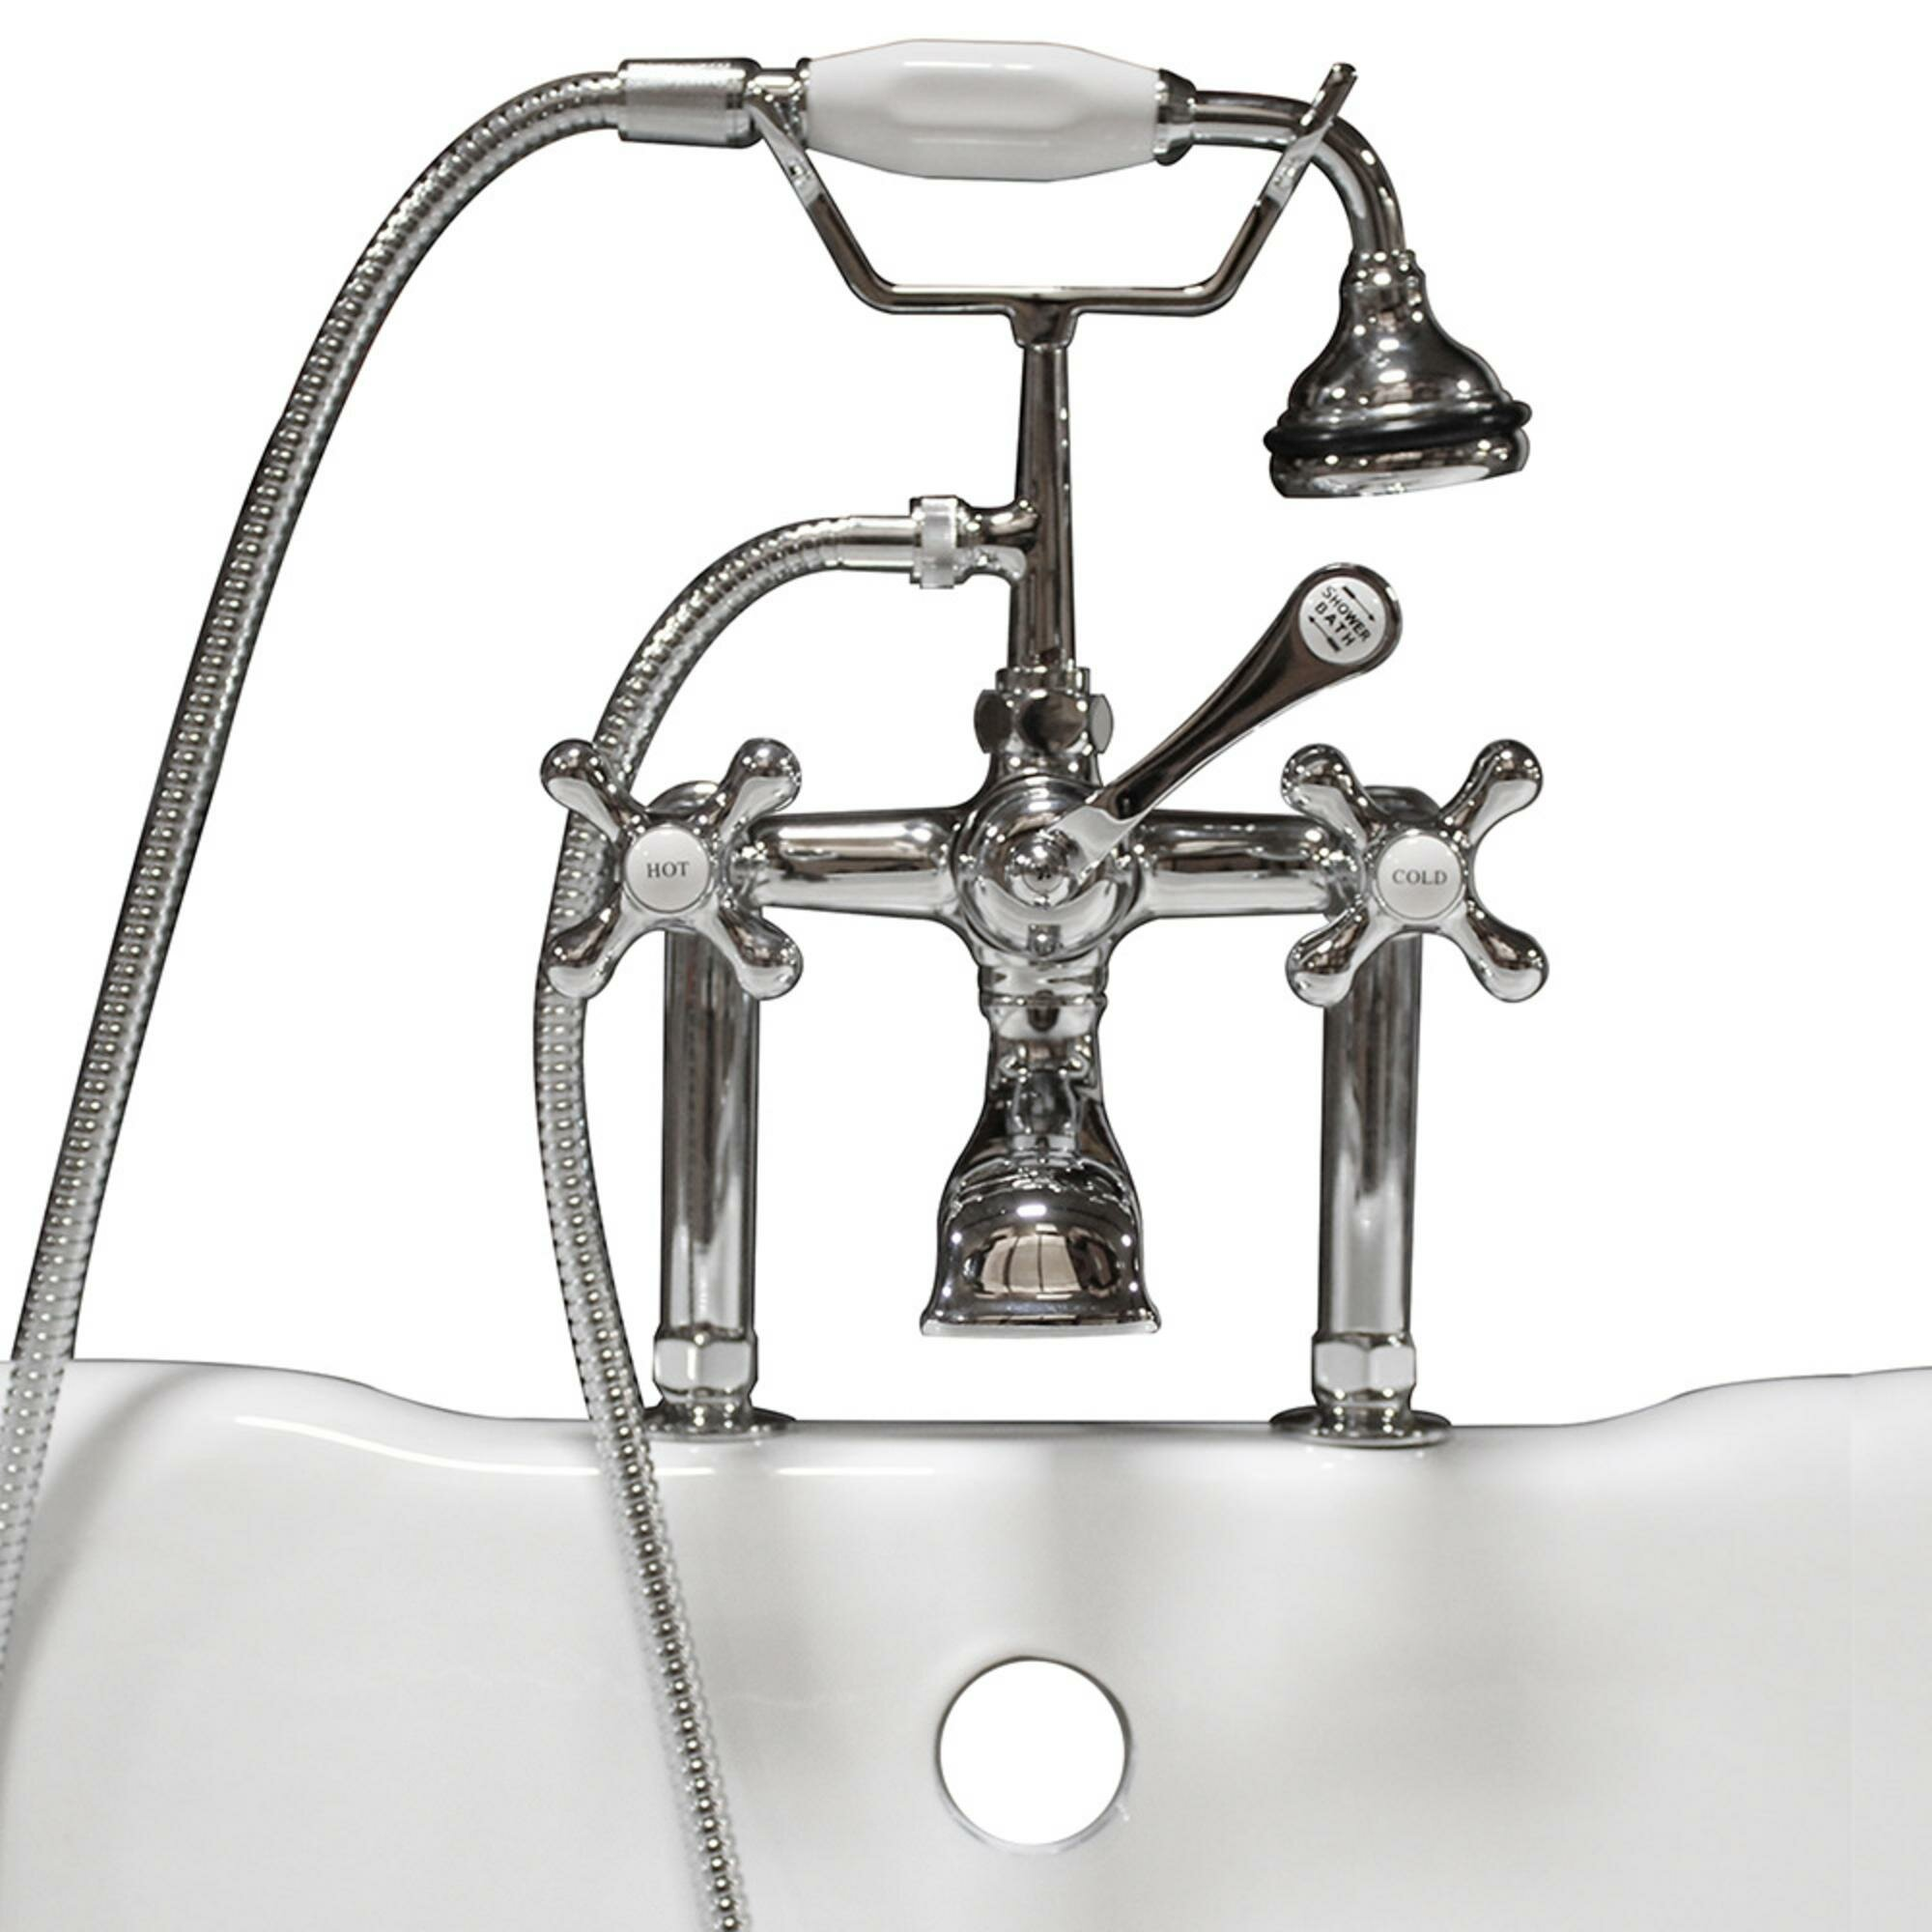 Cambridge Plumbing Triple Handle Deck Mounted Clawfoot Tub Faucet